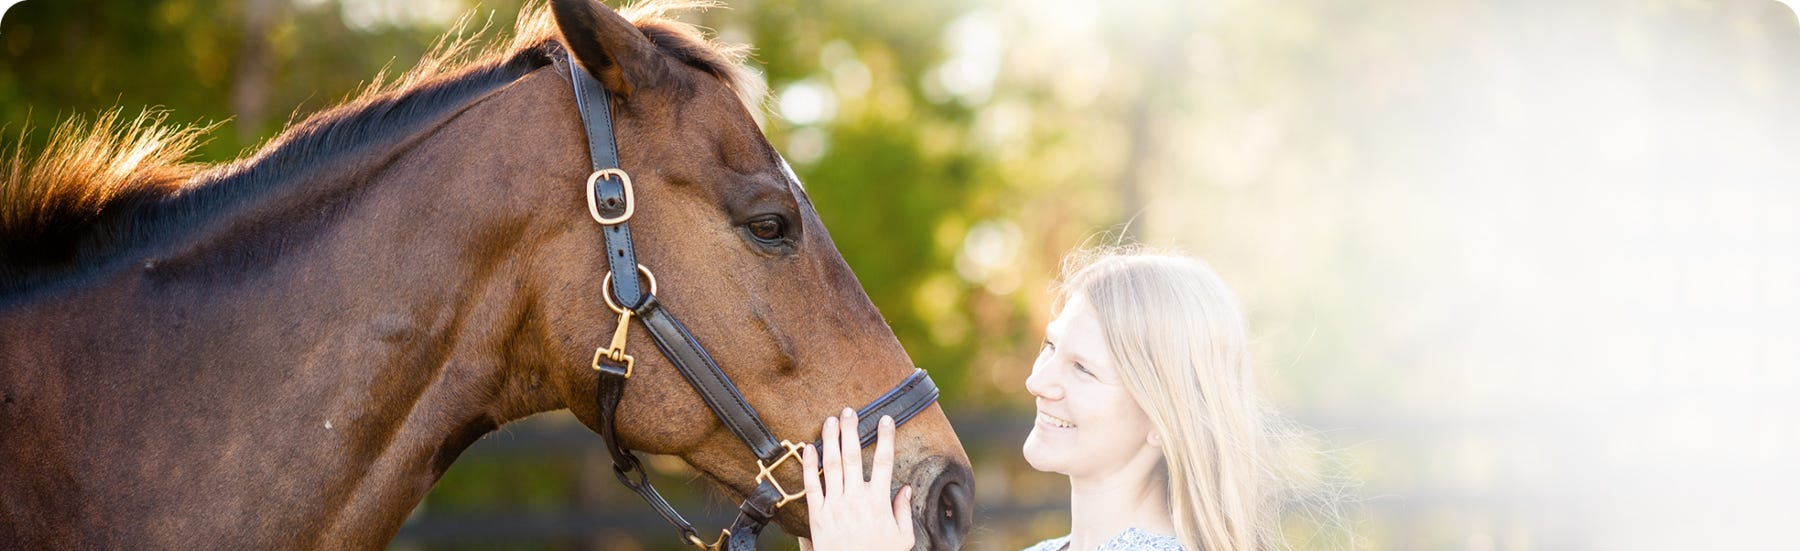 Calming for horses